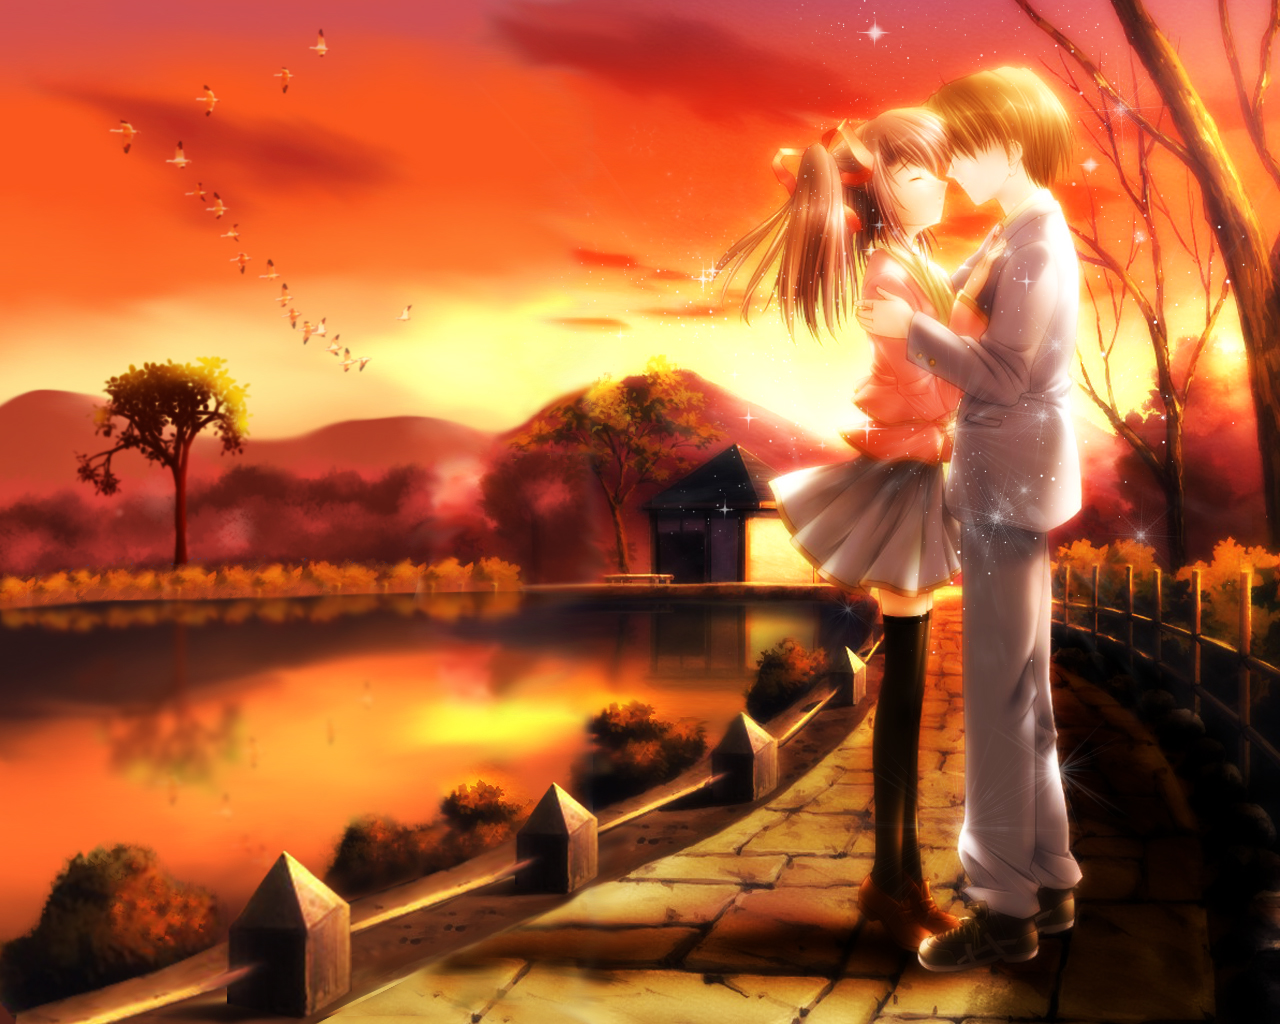 Romantic Gf Bf Love Wallpaper : Romance Anime Love couple kissing images HD